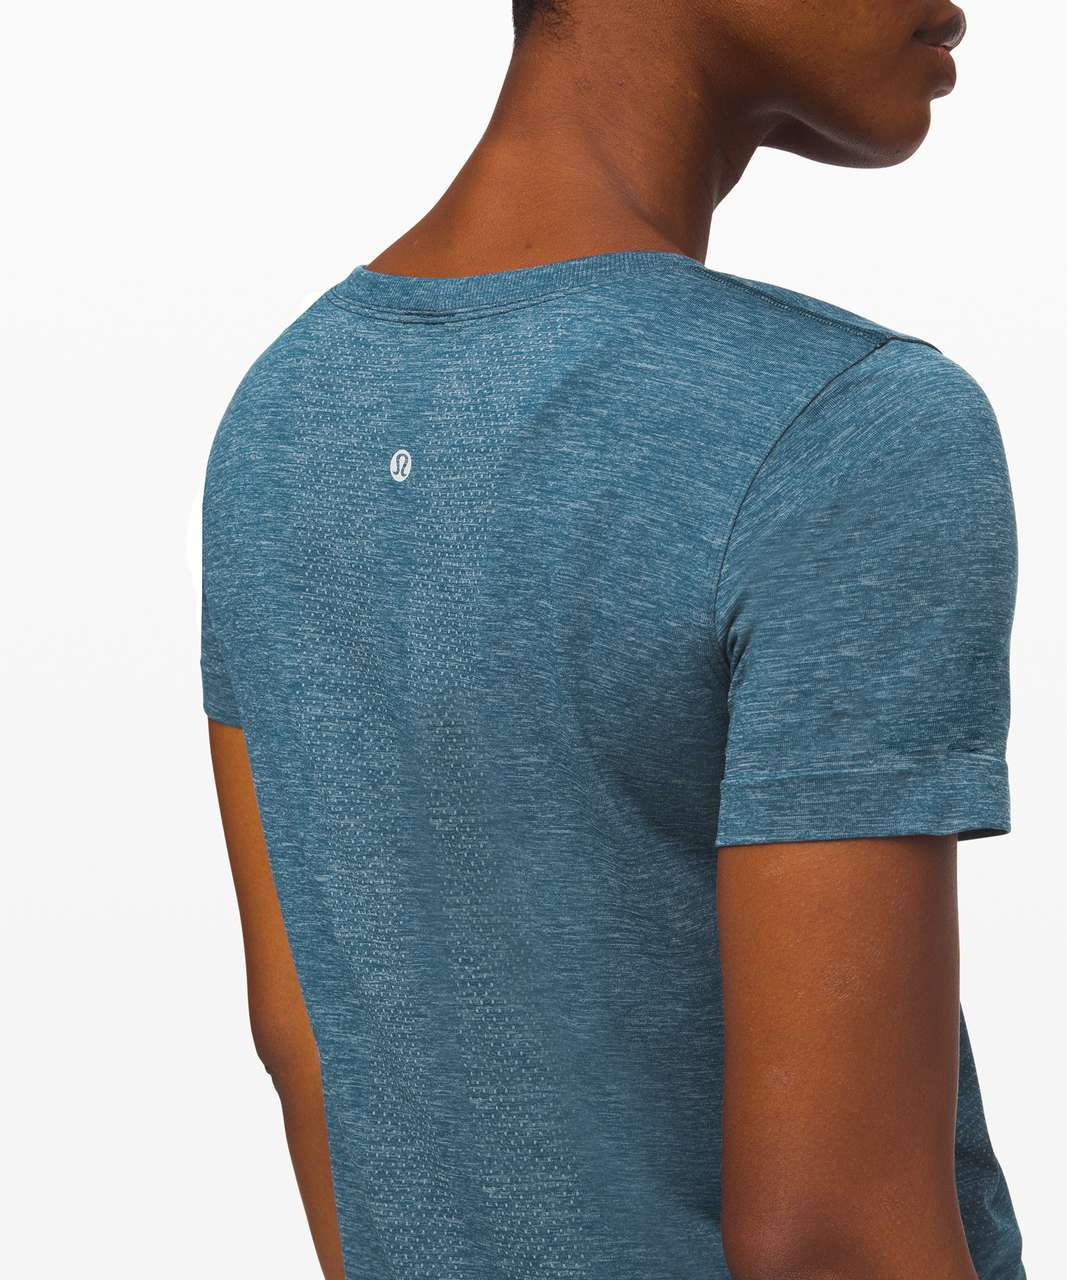 Lululemon Swiftly Relaxed Short Sleeve - Blue Charcoal / Night Diver